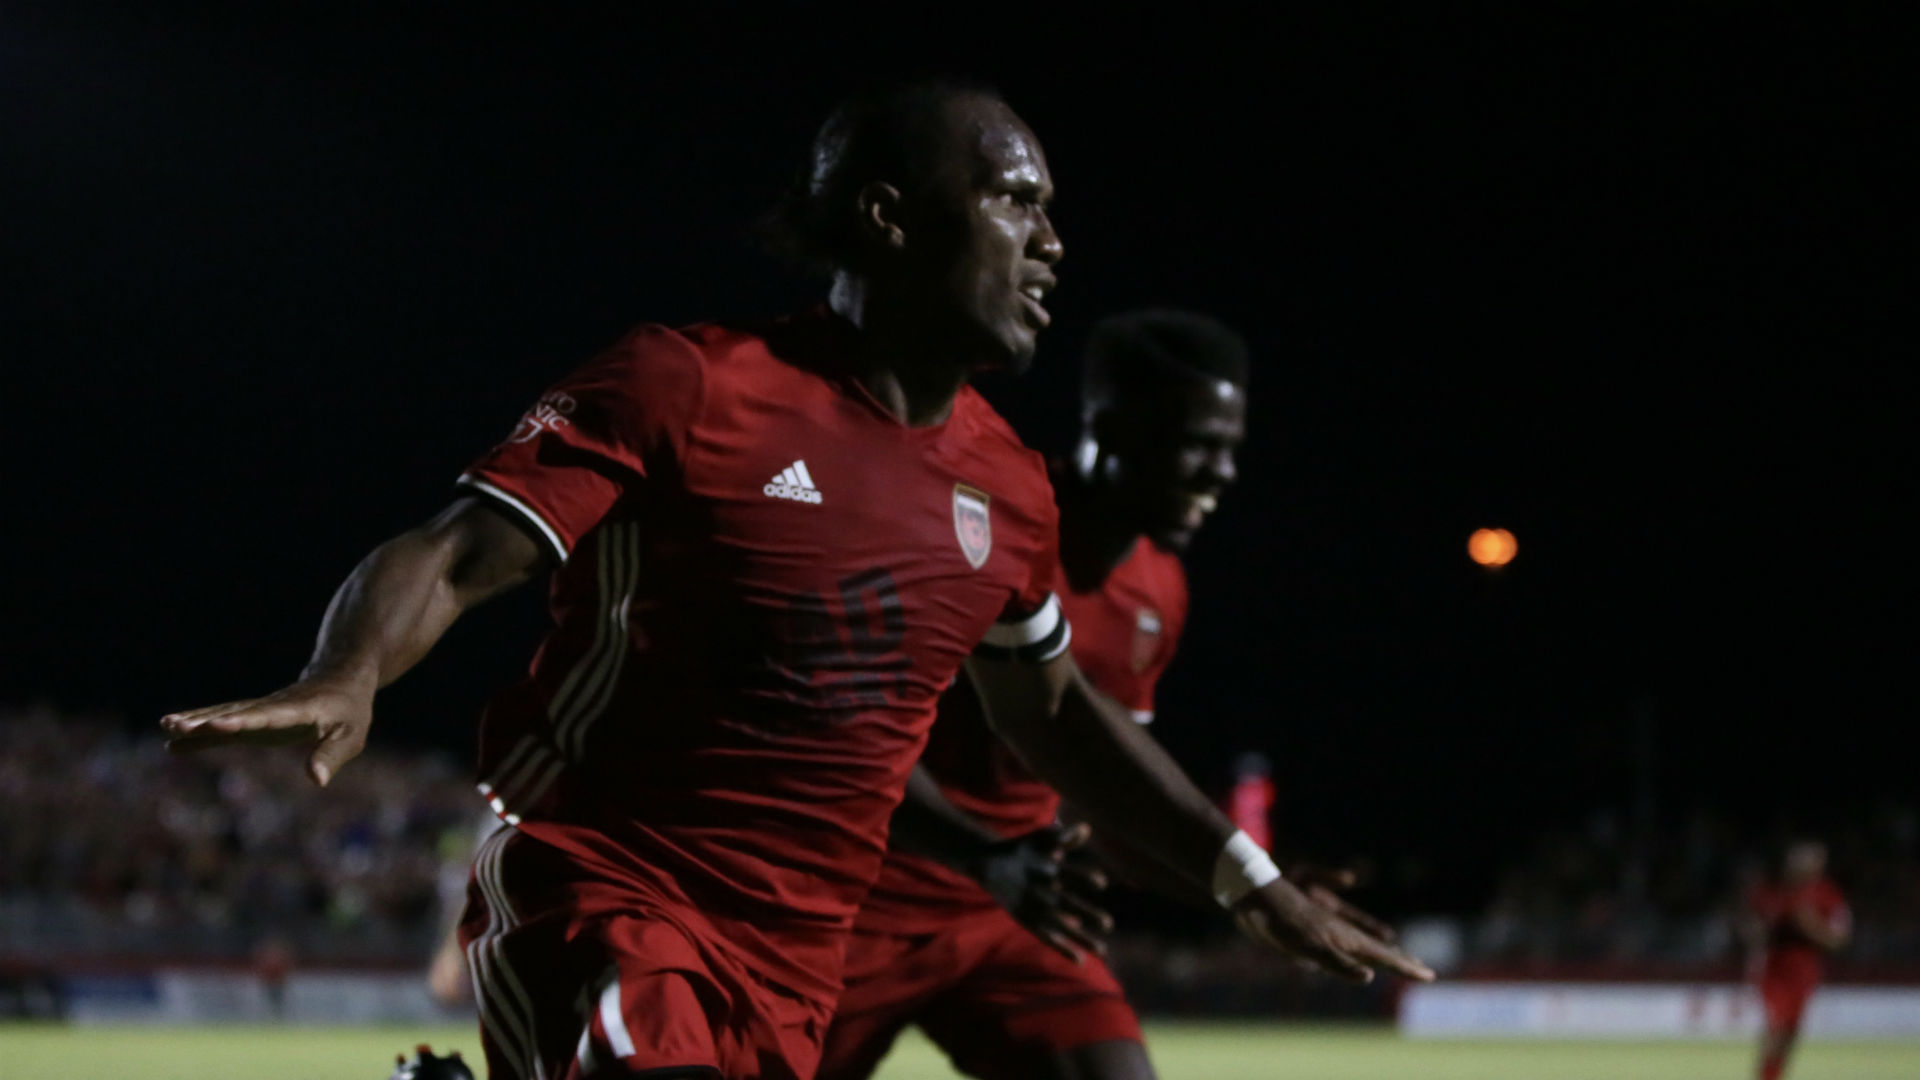 Chelsea legend Didier Drogba scores & assists on Phoenix Rising debut